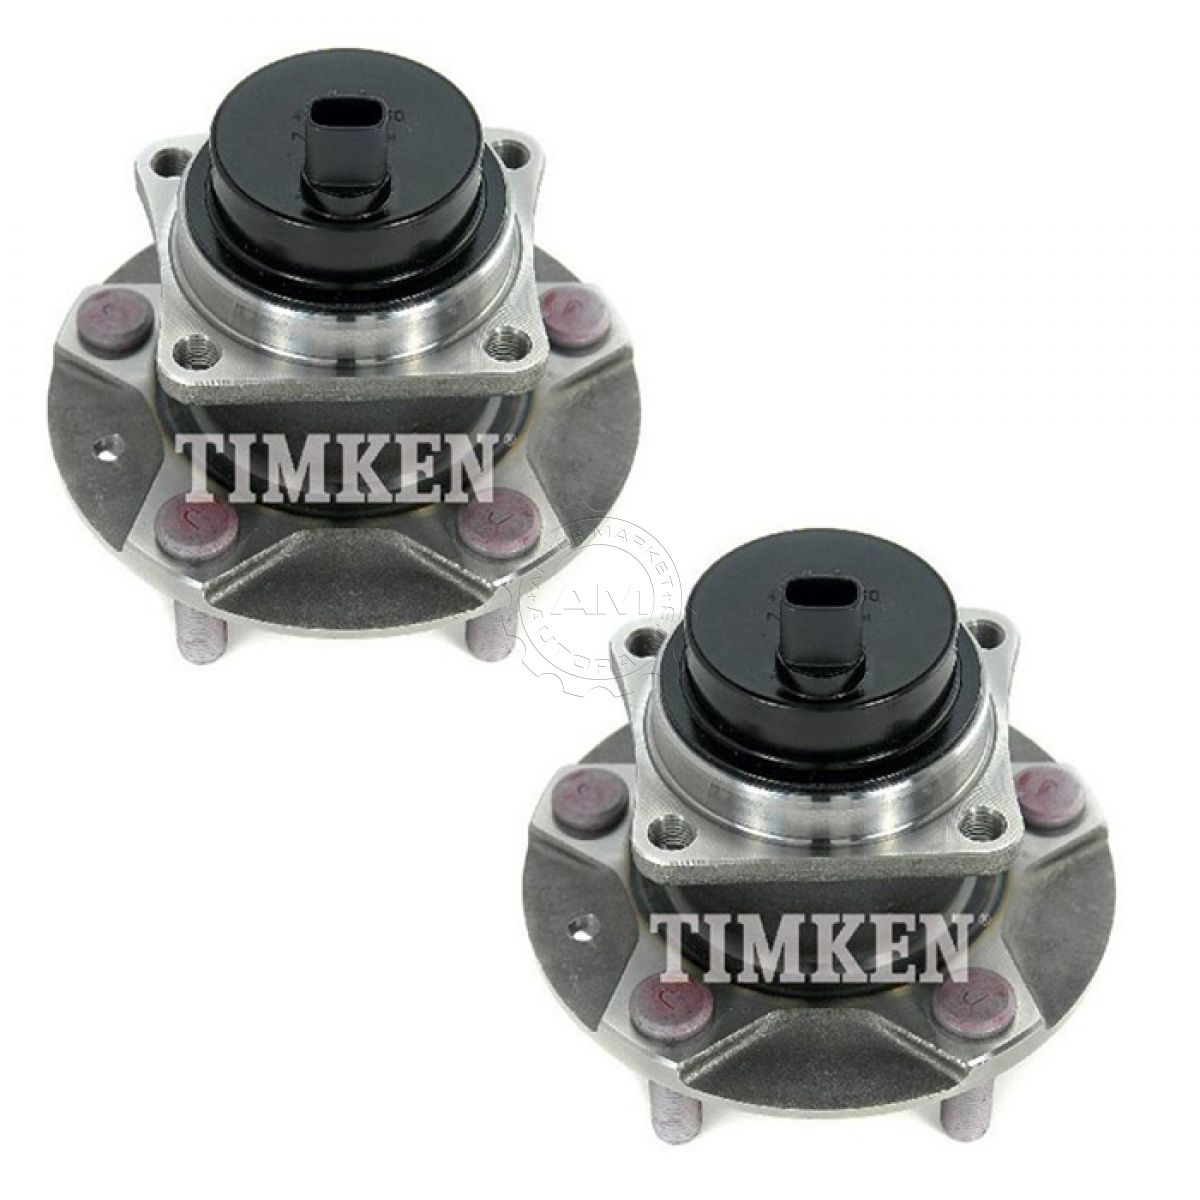 hight resolution of timken ha590096 wheel bearing hub front left right pair for mazda rx 8 rx8